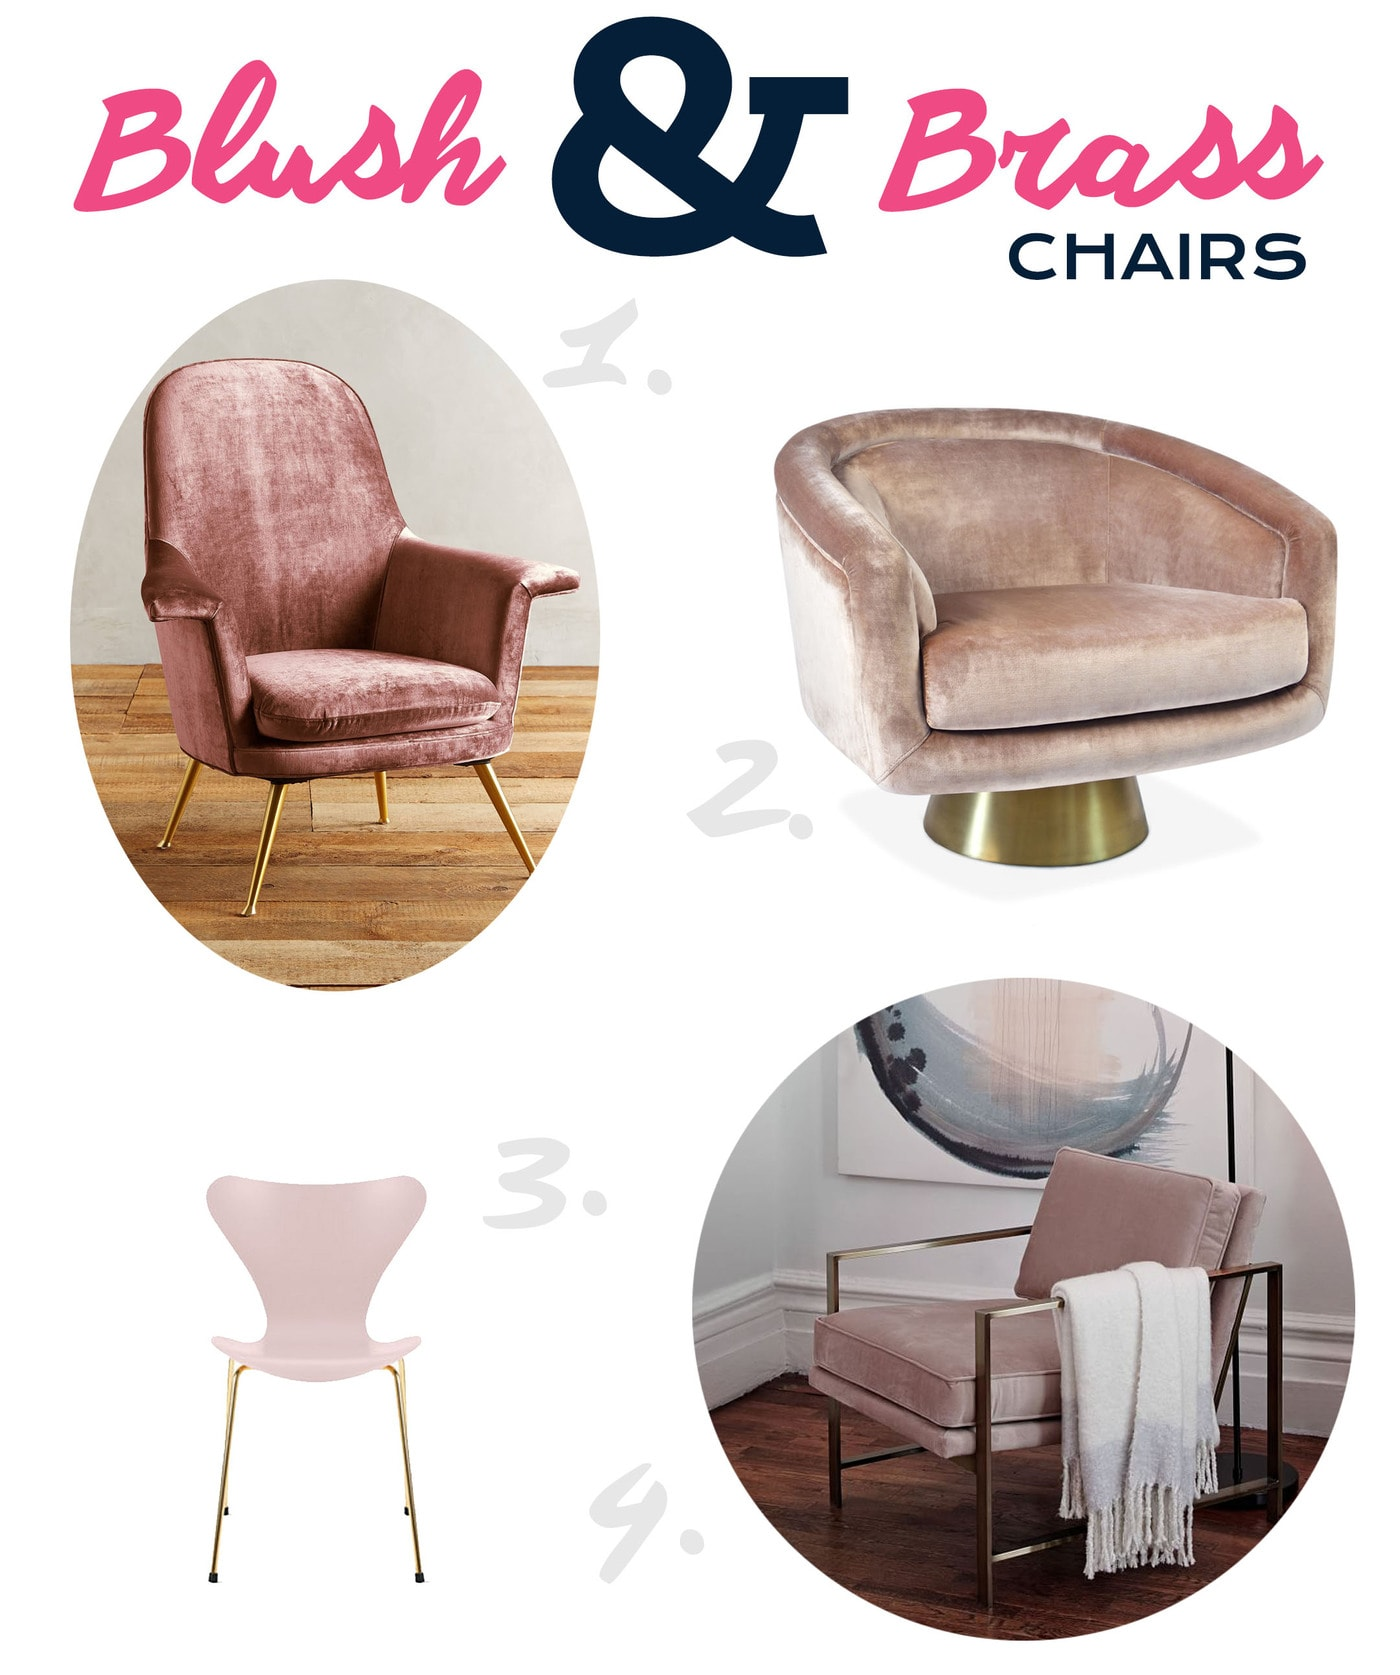 Blush Pink & Brass Chairs An Obsession • Choosing Figs